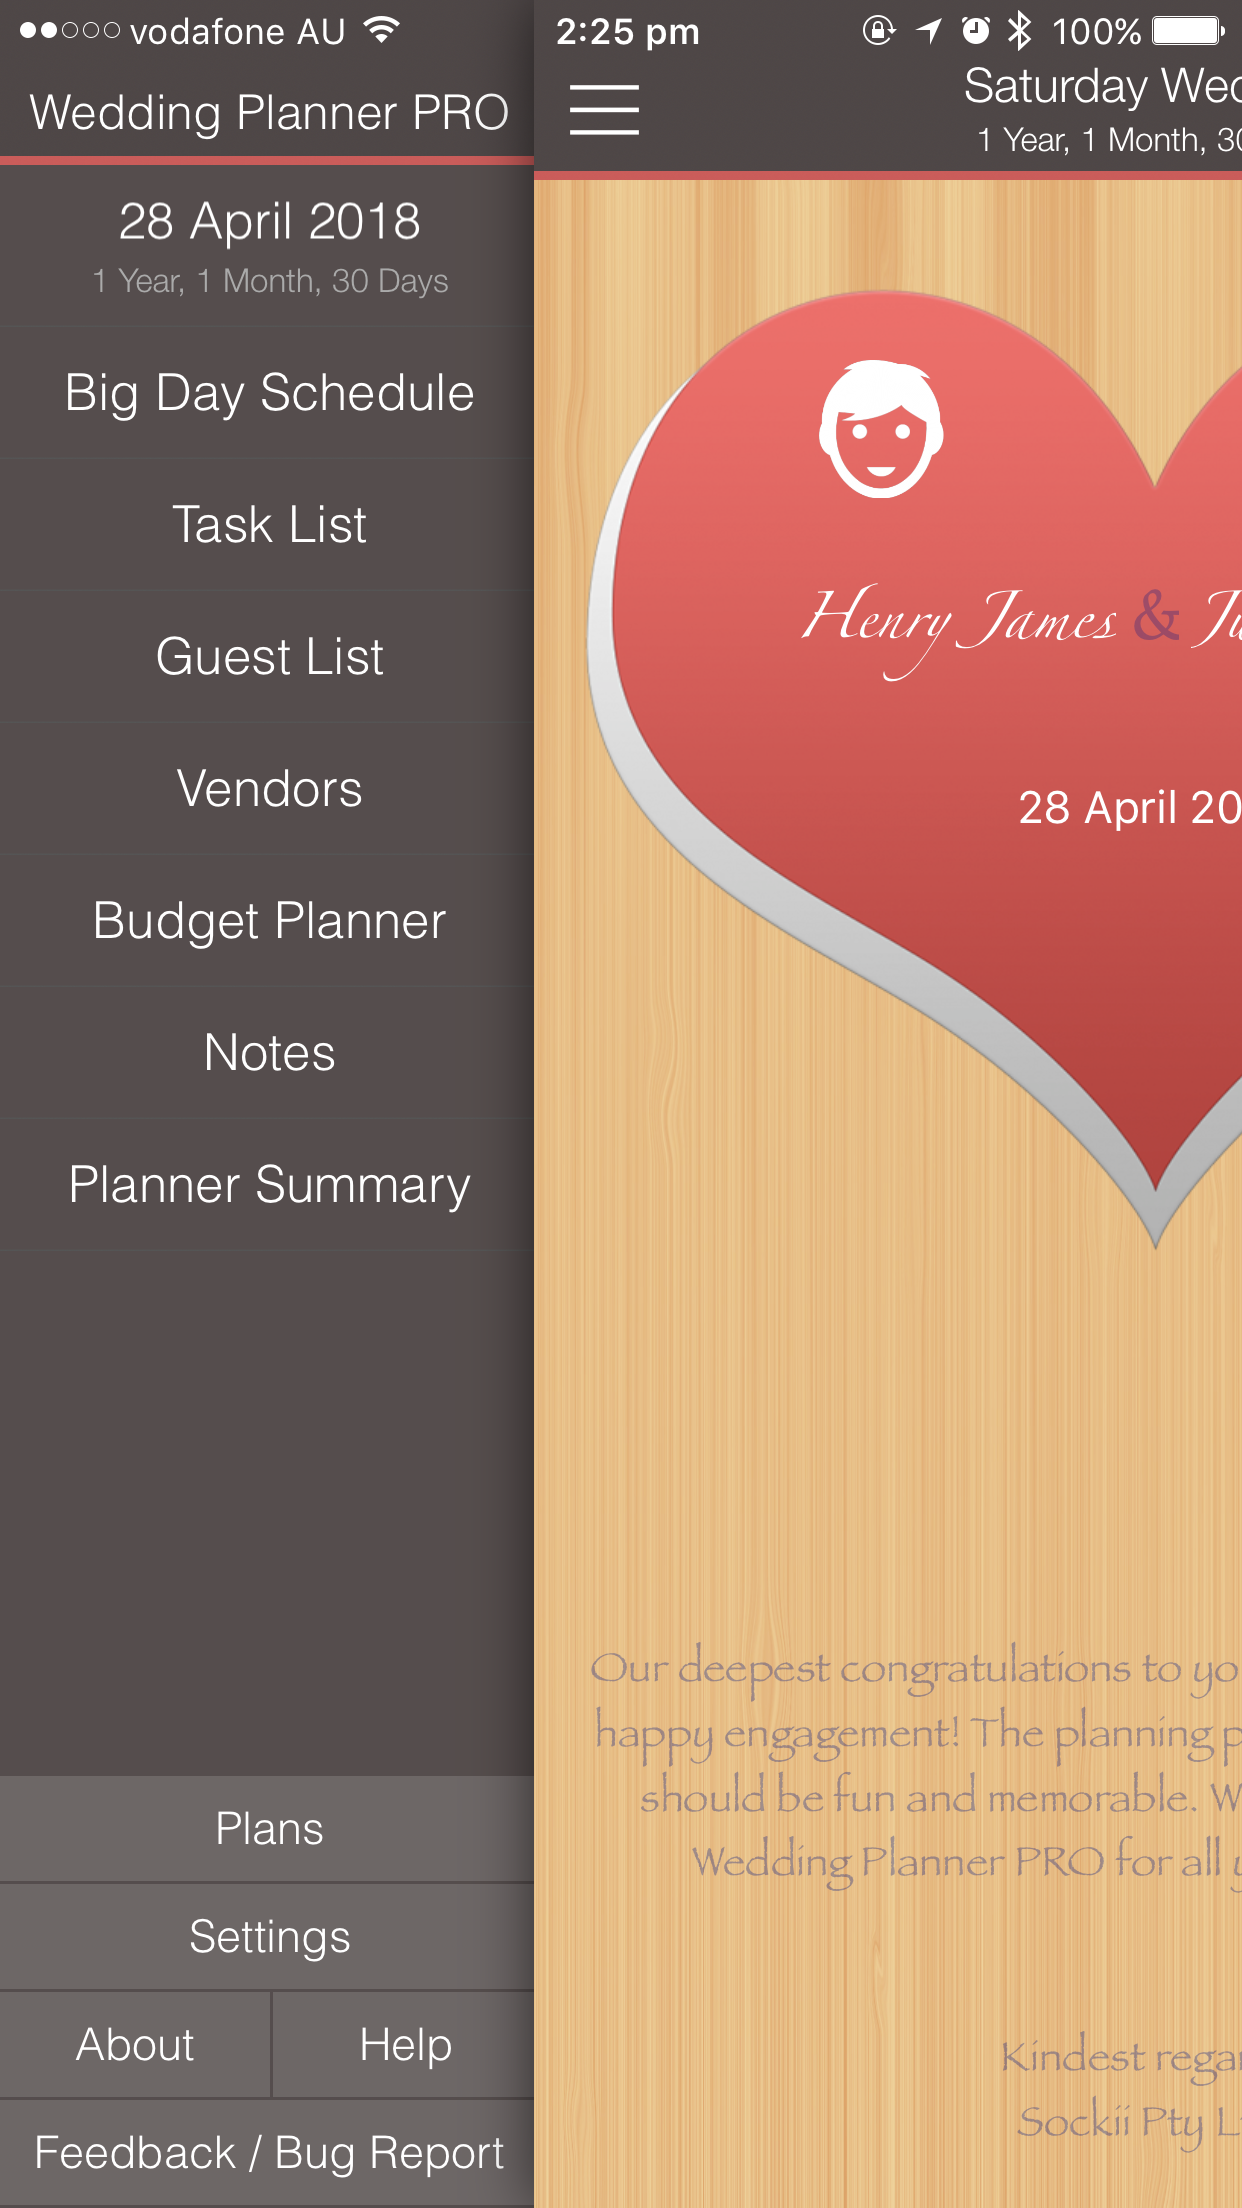 Wedding Planner PRO - Plans iPhone